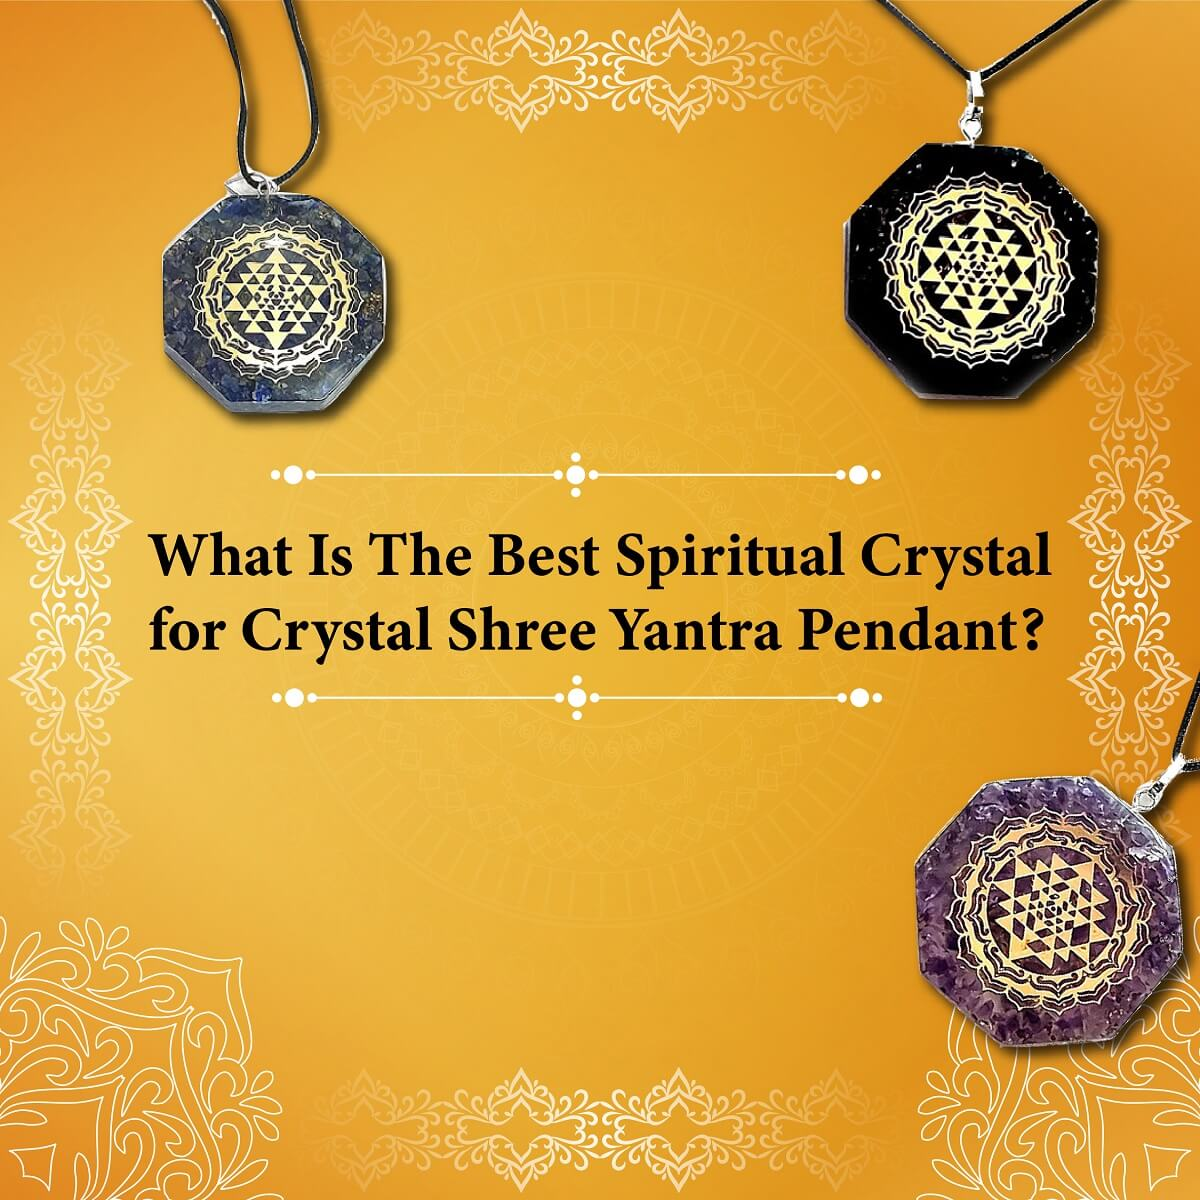 What Is The Best Spiritual Crystal for Crystal Shree Yantra Pendant?